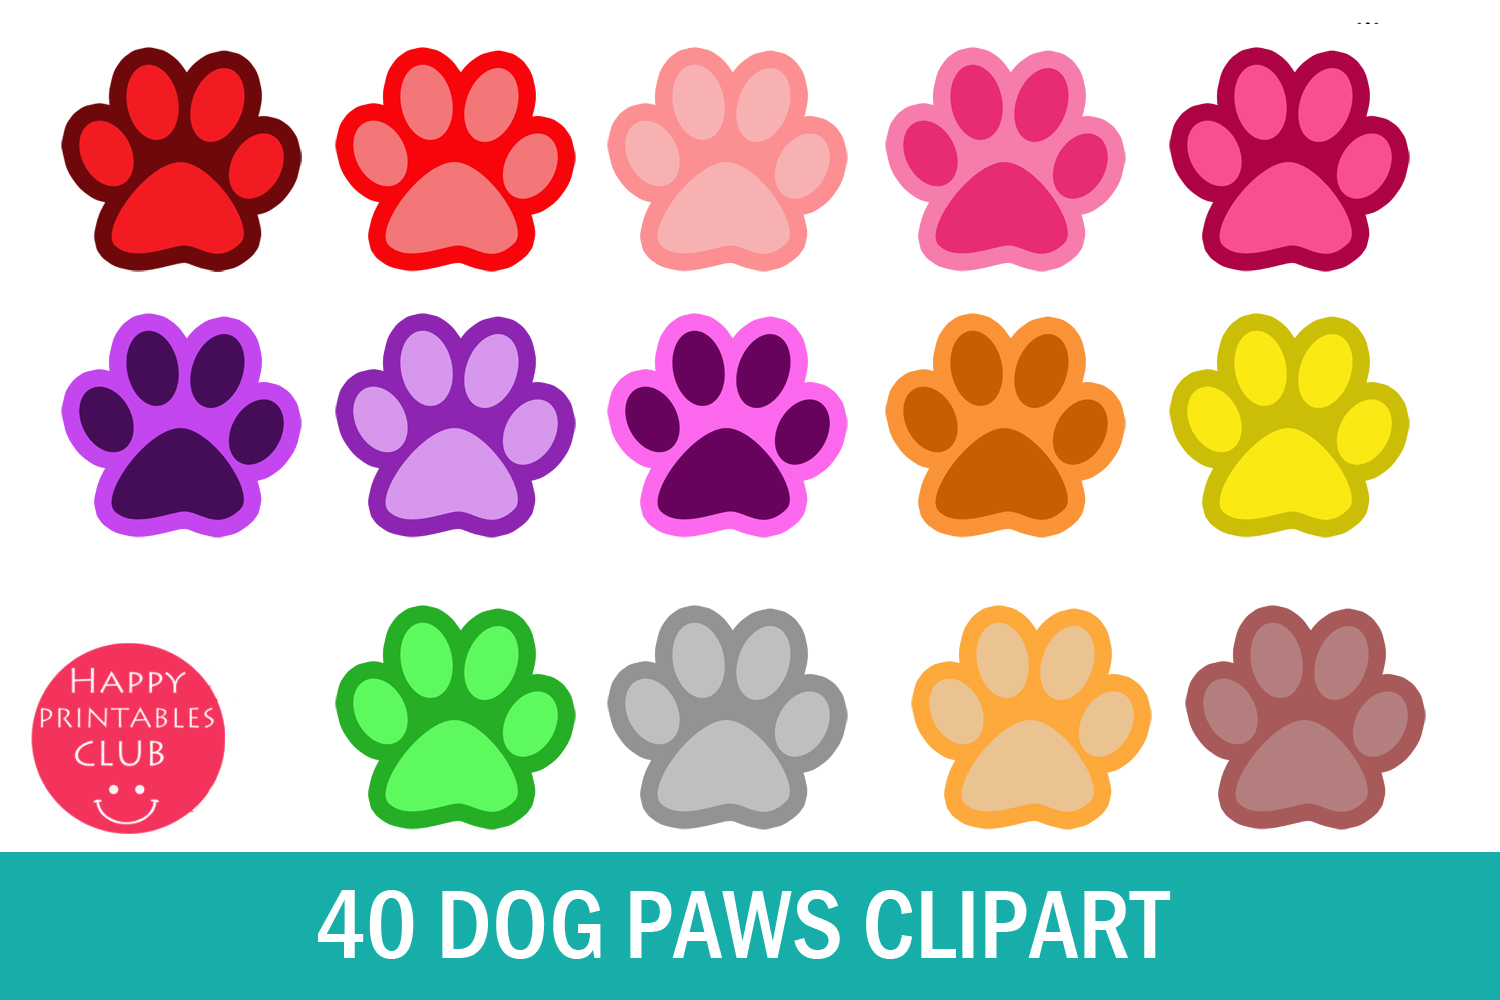 40 Dog Paws Clipart (Graphic) by Happy Printables Club · Creative Fabrica